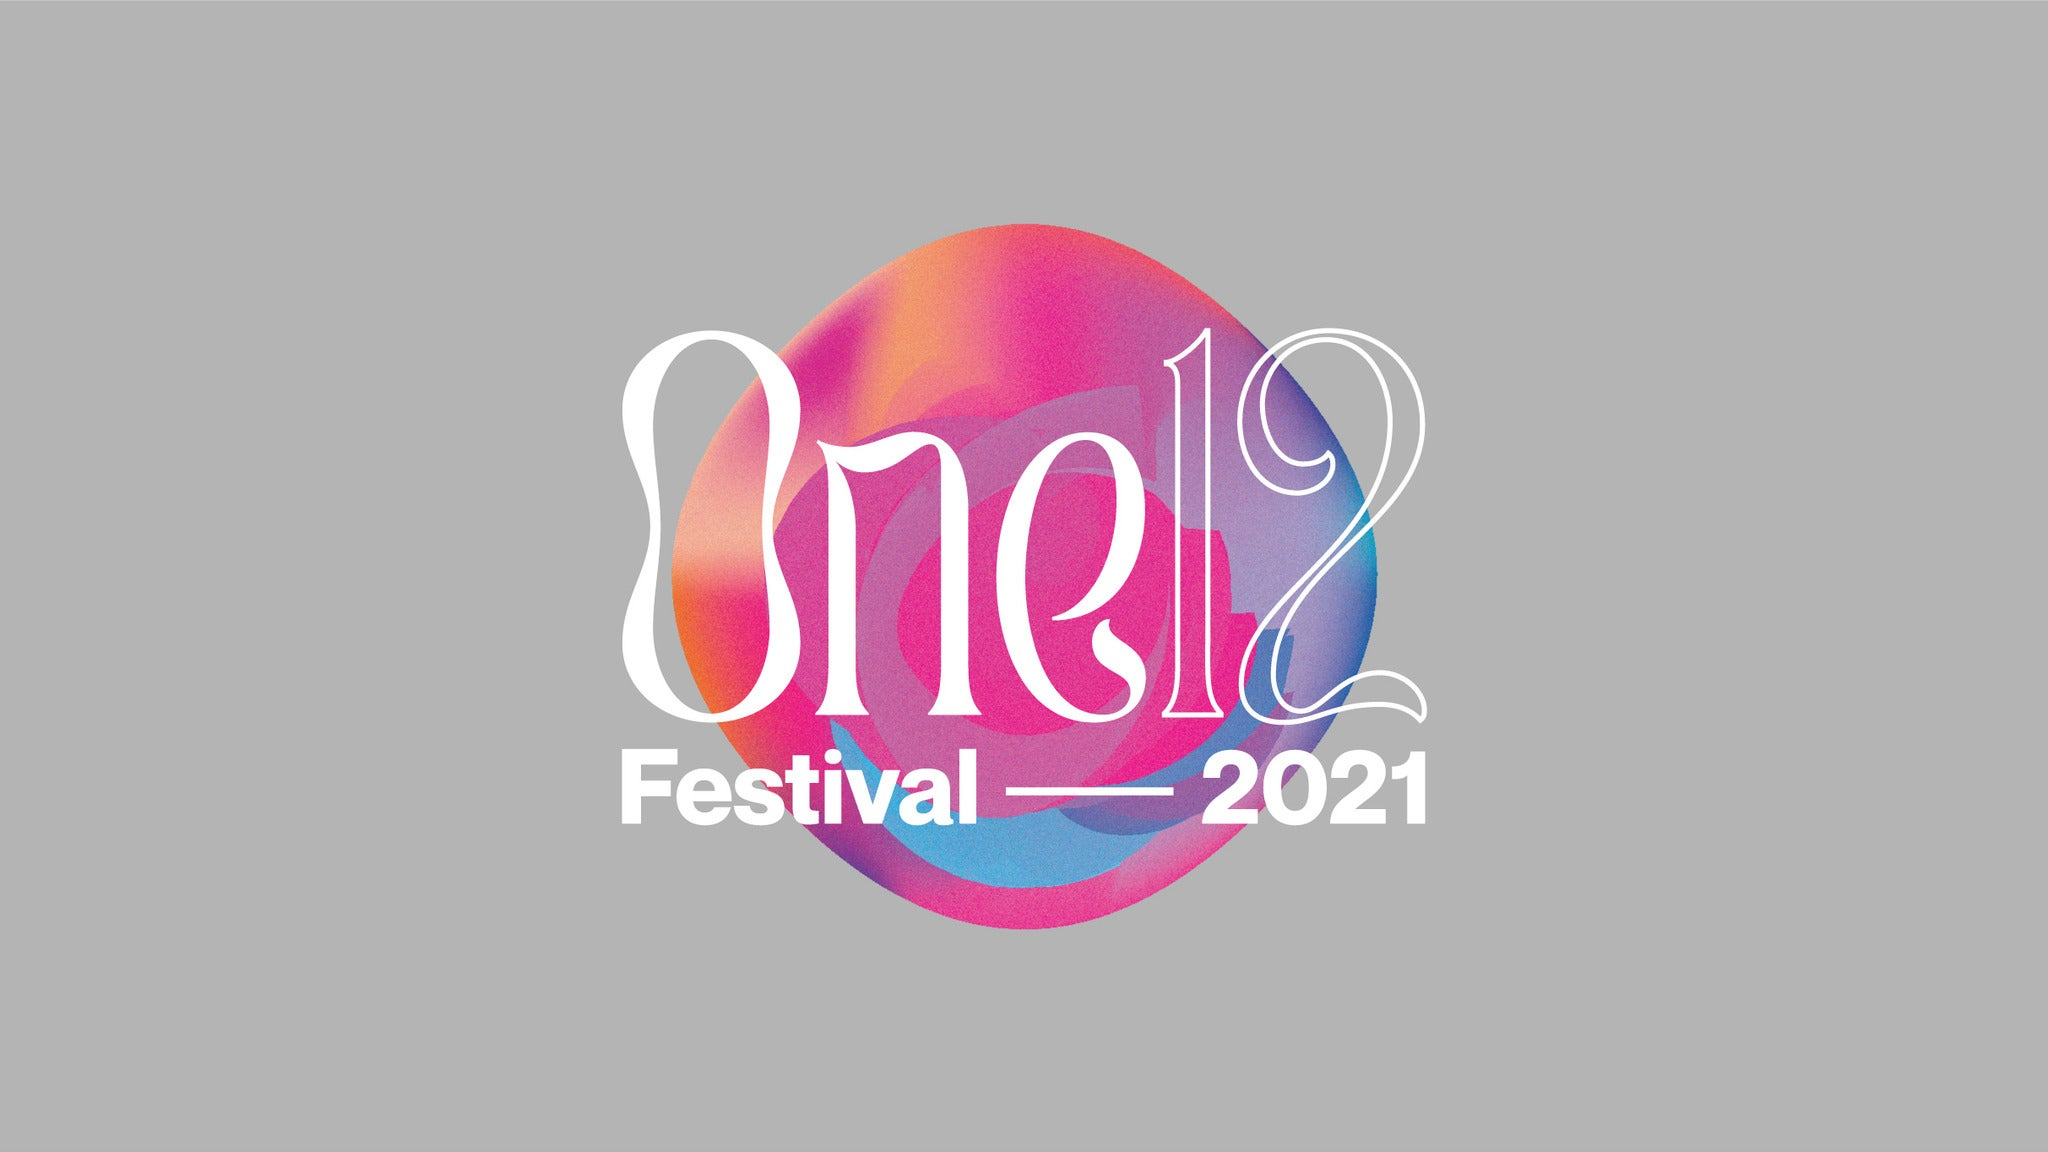 Image used with permission from Ticketmaster | One12 Festival 2021 #5 tickets